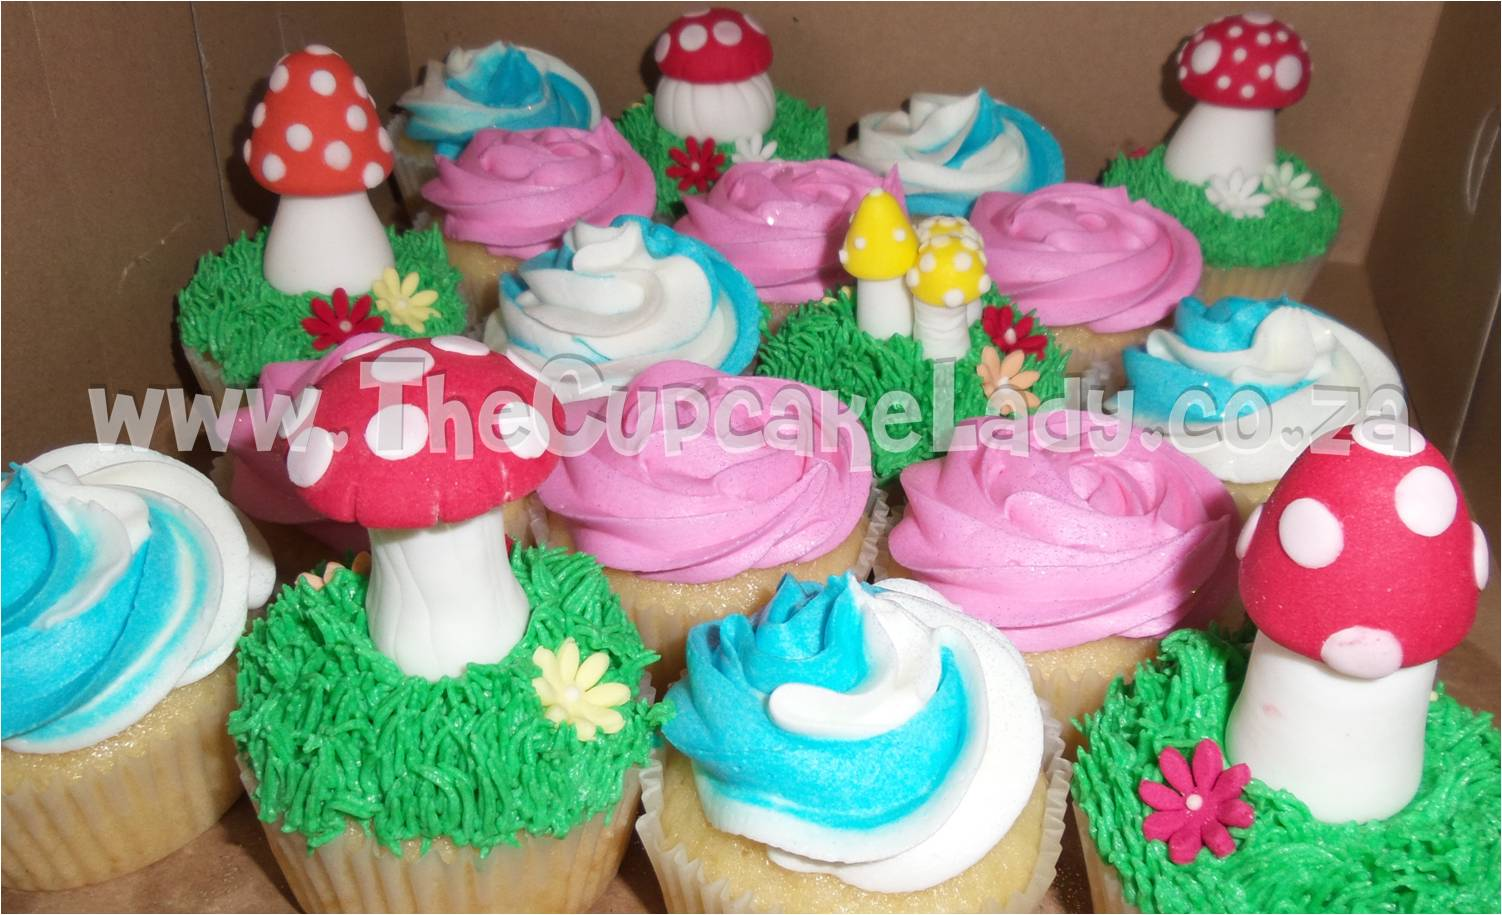 vanilla cupcakes, Smurf party, vanilla butter icing, hand made sugar paste toadstools